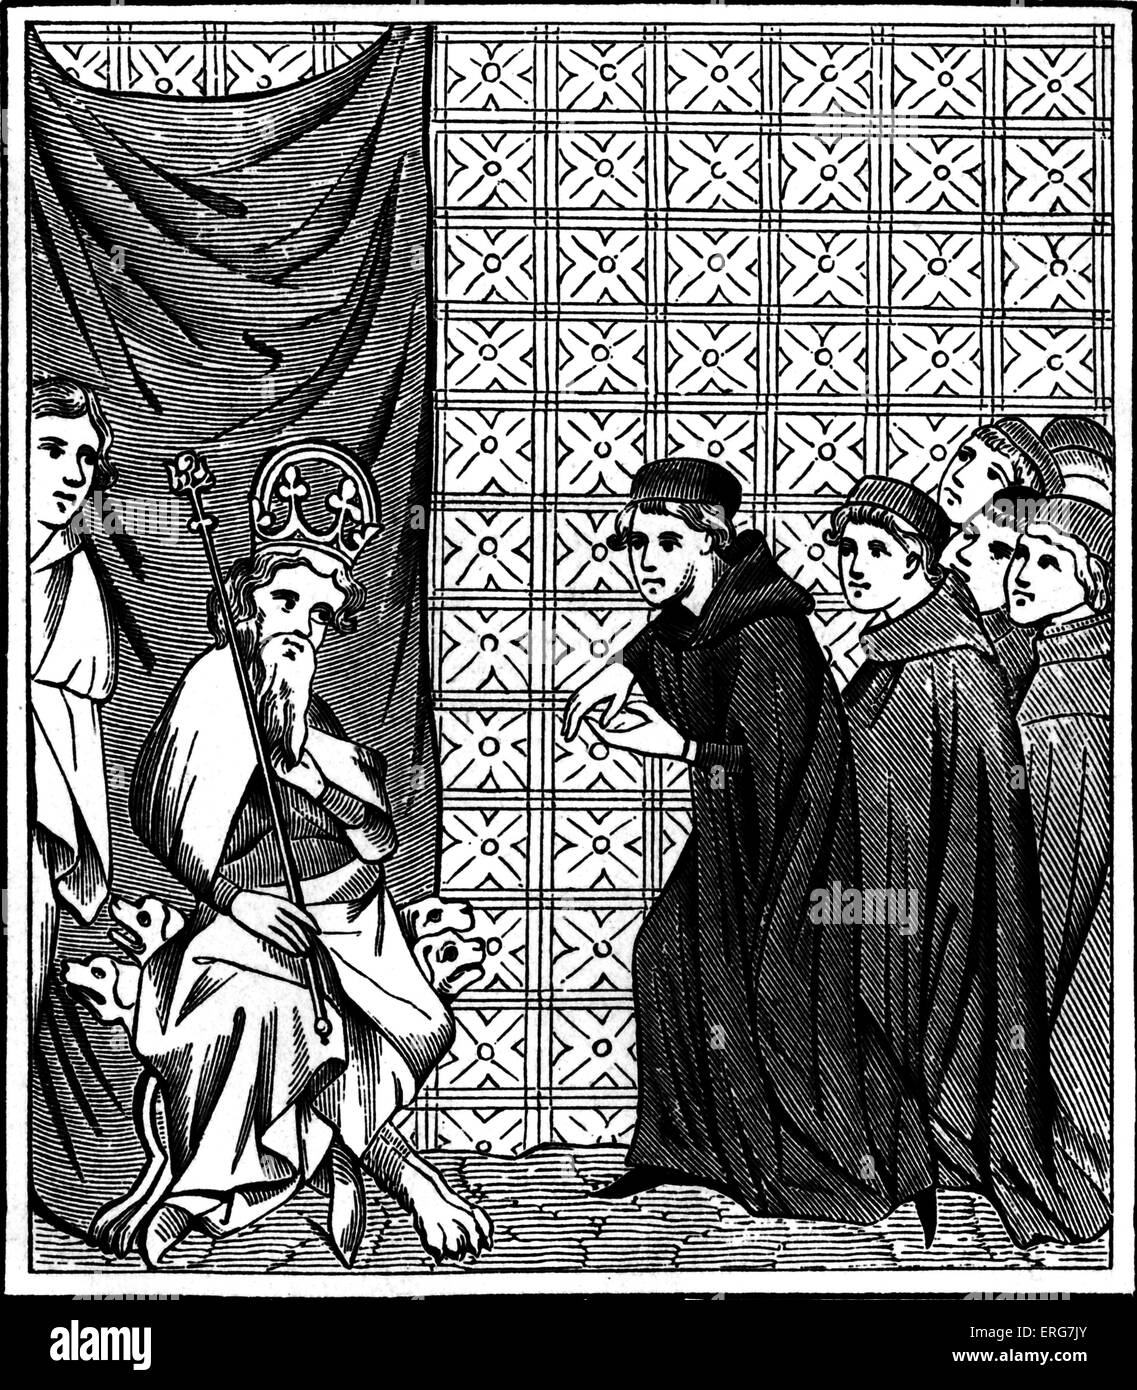 Emperor Charles IV arguing with fellows of the University of Paris. - Stock Image